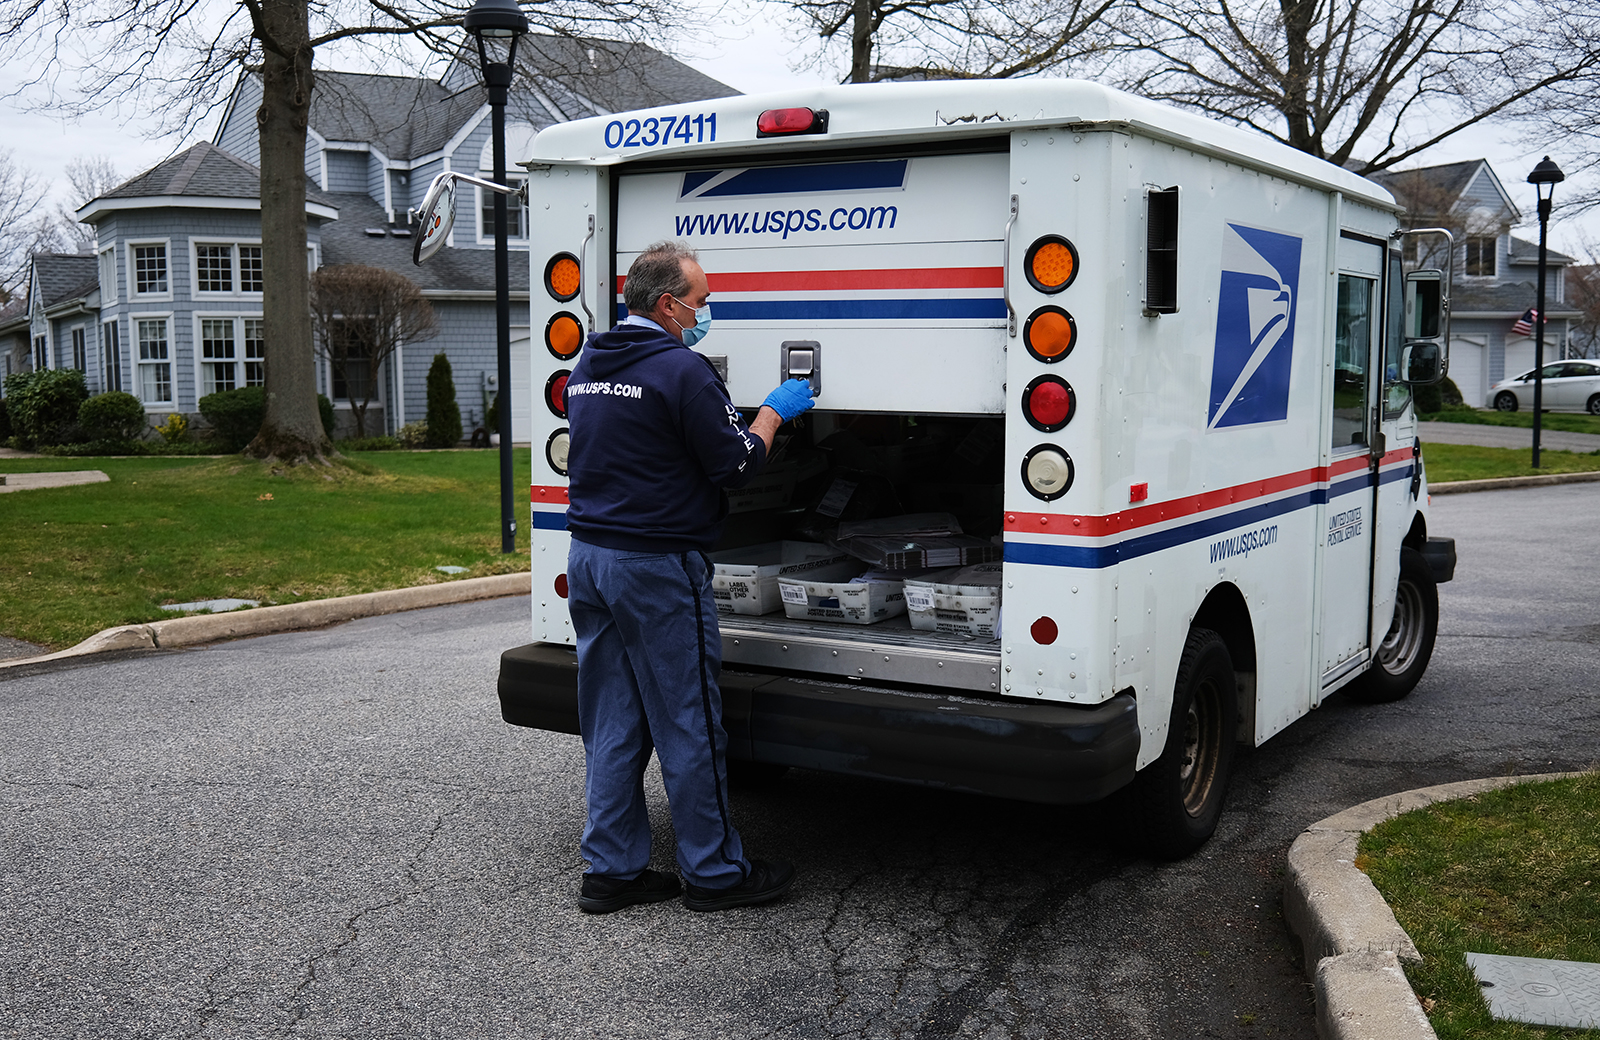 As Trump attacks the mail, his administration gains more access to the Postal Service